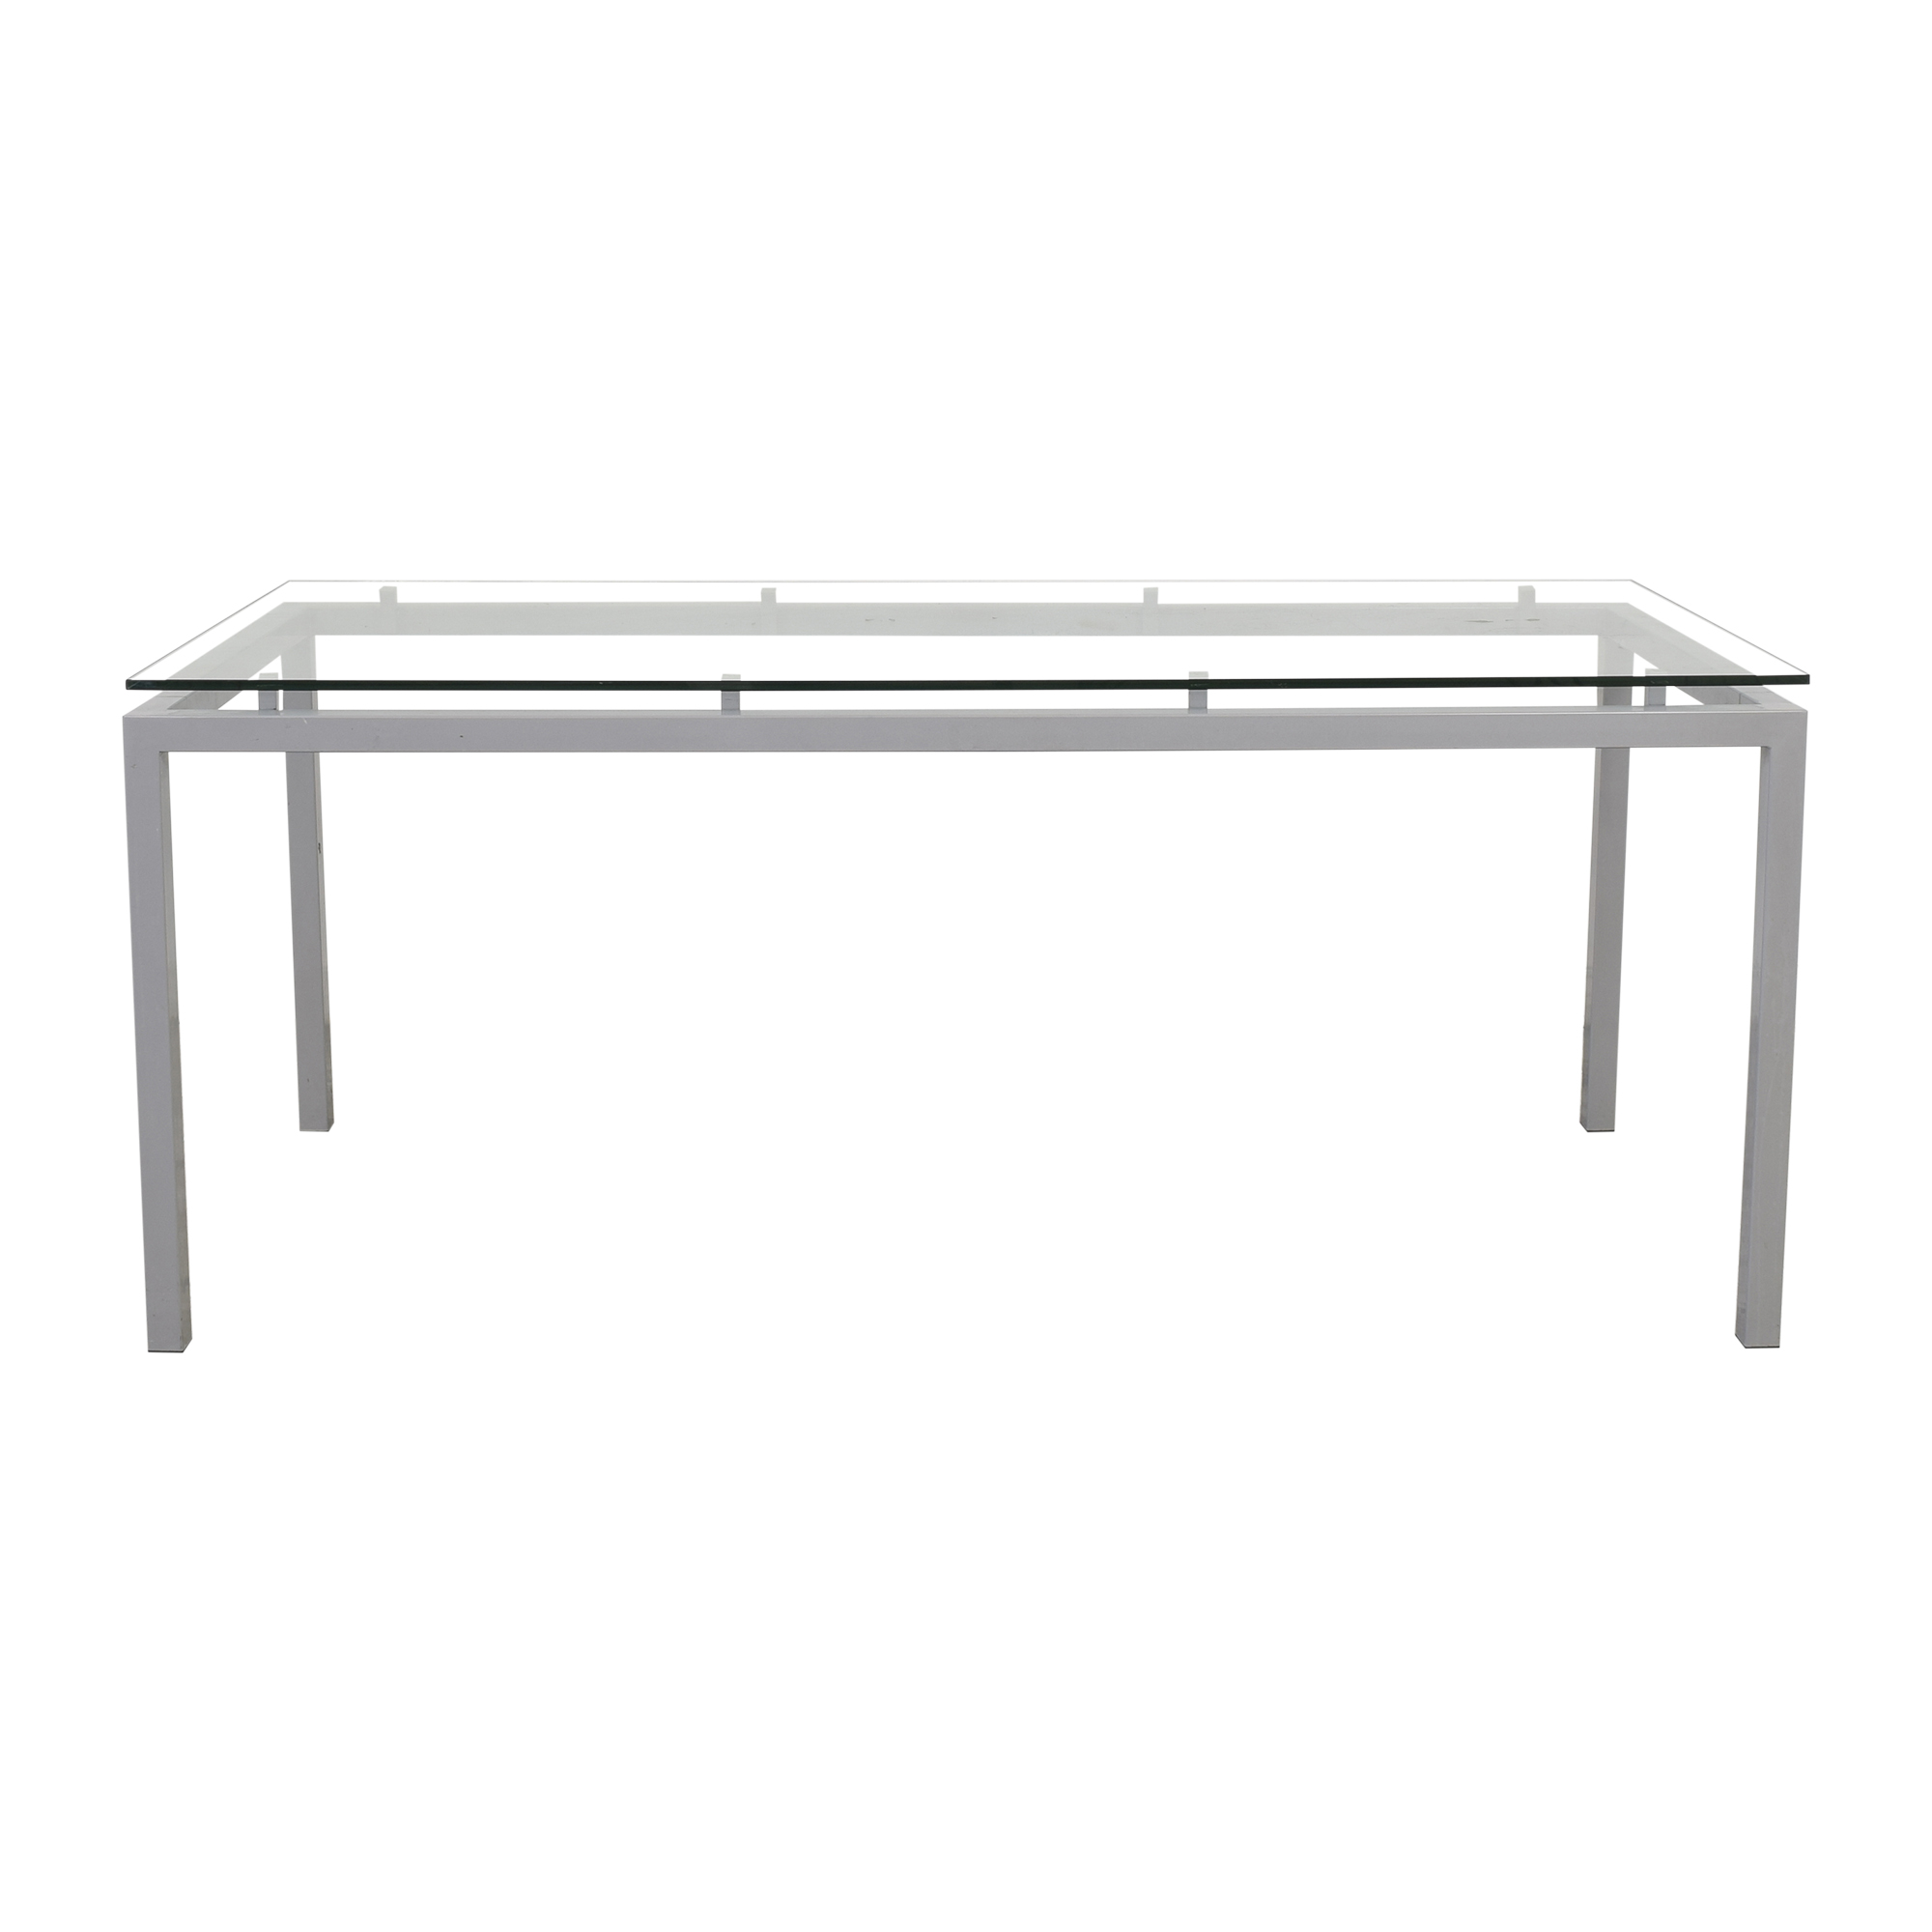 Crate & Barrel Crate & Barrel Modern Parsons Style Dining Table nyc